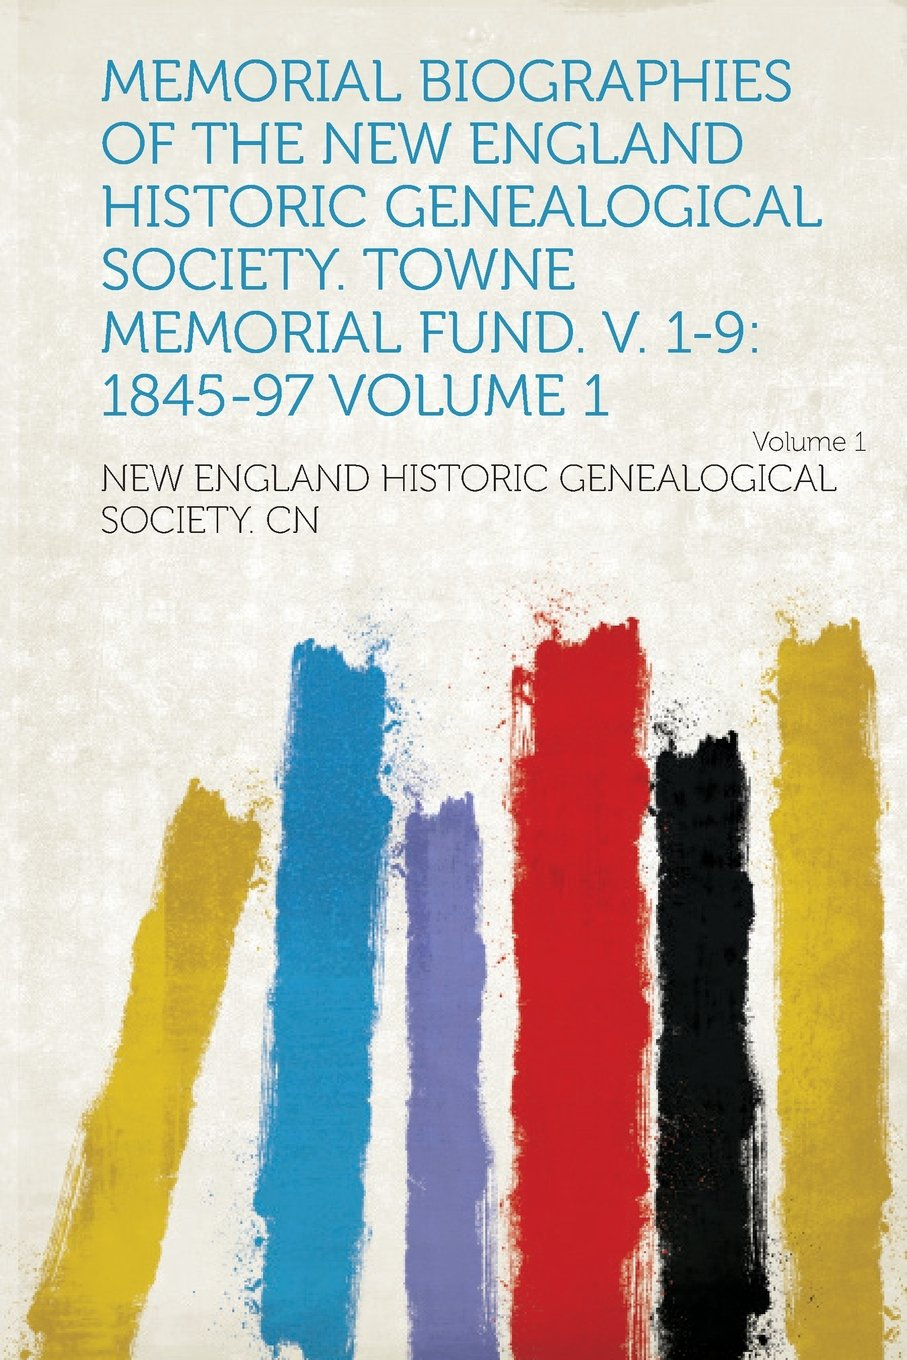 Memorial Biographies of the New England Historic Genealogical Society. Towne Memorial Fund. V. 1-9: 1845-97 Volume 1 pdf